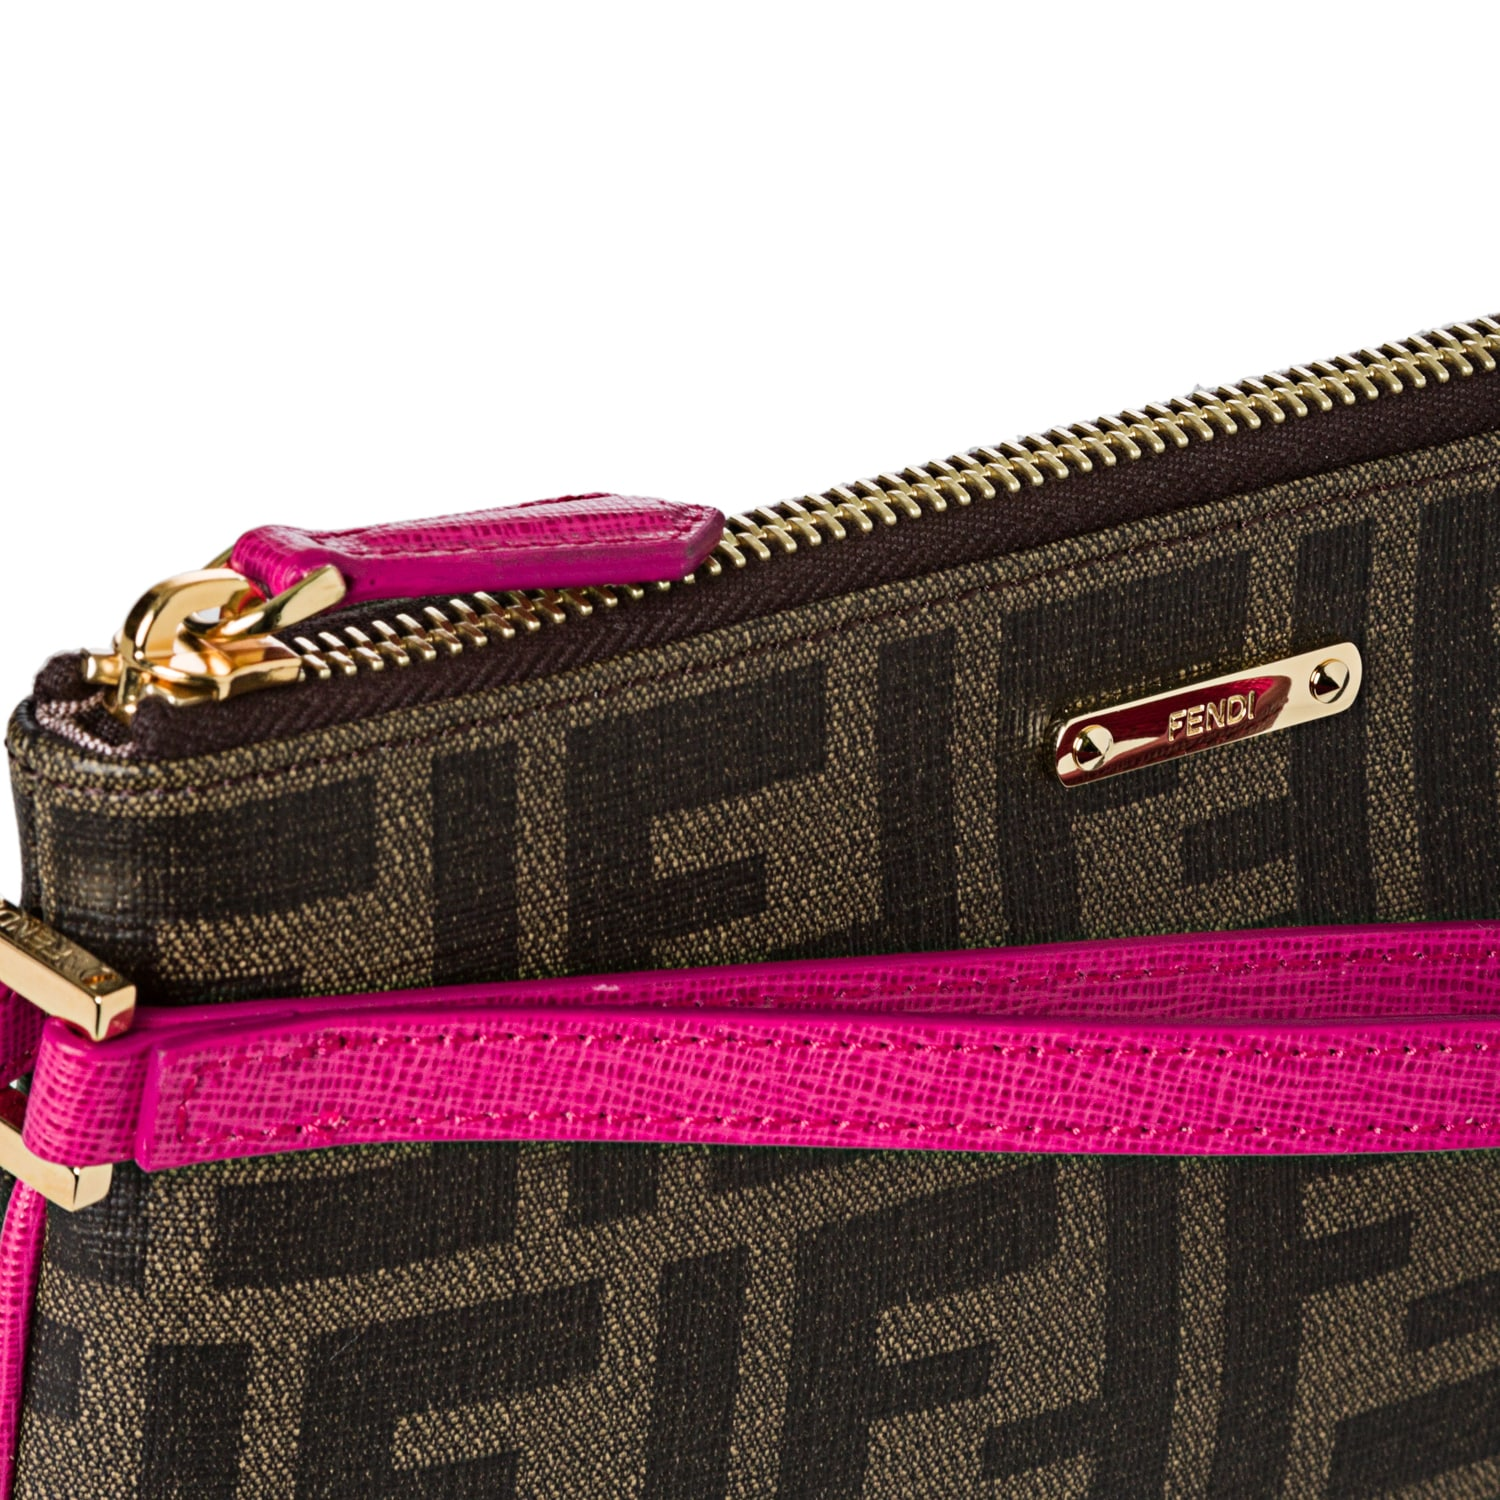 6ecfa522c369 Shop Fendi Tobacco and Pink Coated Canvas Zucca Print Wristlet - Free  Shipping Today - Overstock.com - 7639673